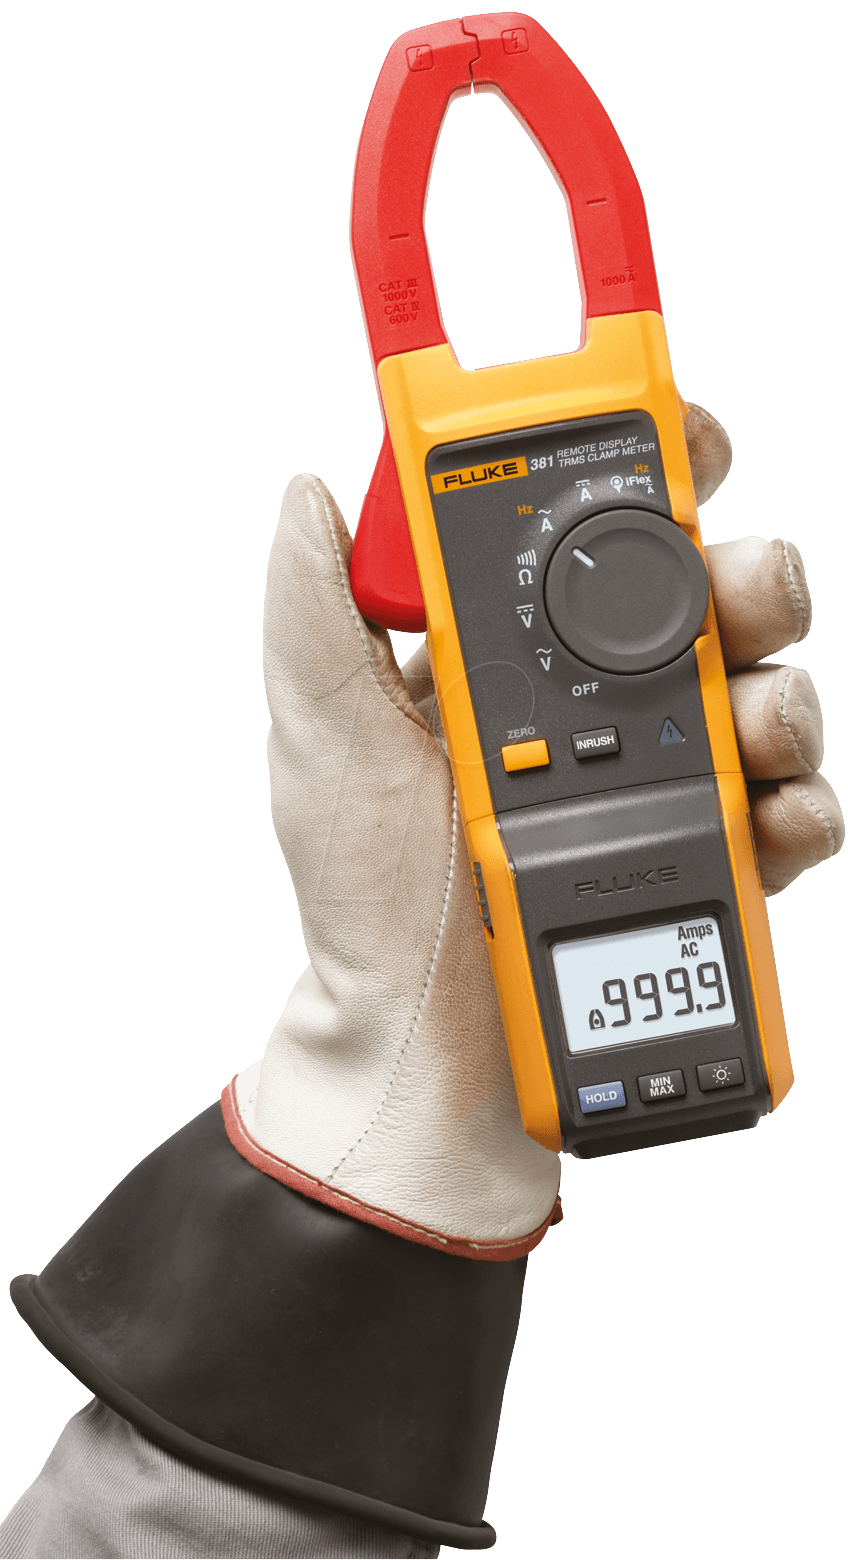 fluke 336 user manual pdf